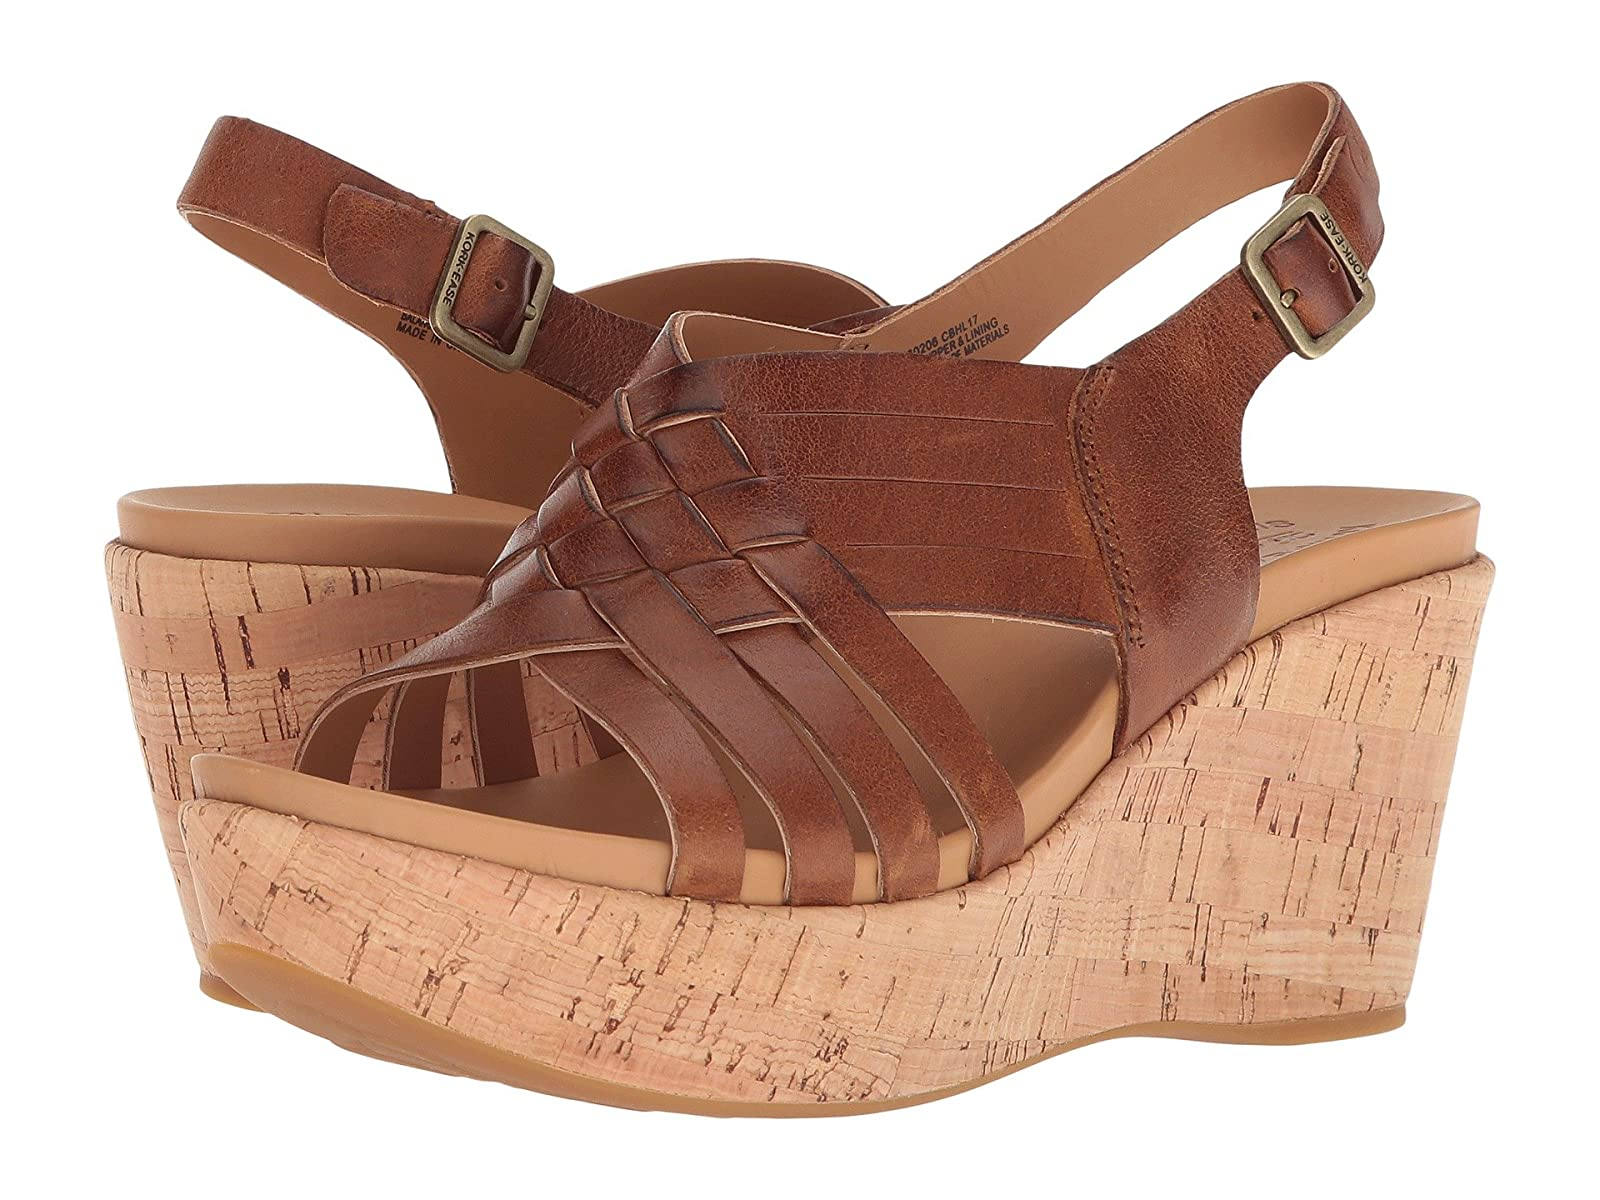 Kork-Ease AdelantoCheap and distinctive eye-catching shoes